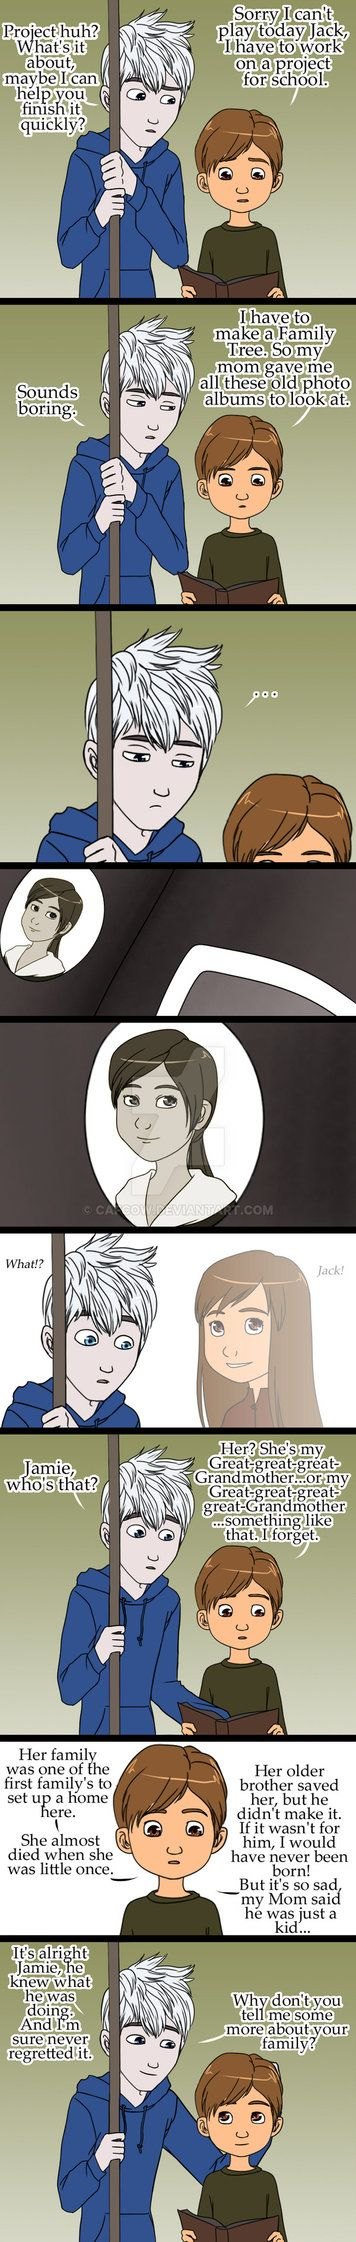 has made a fanfic based off of my Ancestry pictures, www.fanfiction.net/s/8742114/1... please check it out. ]:3 So this idea popped into my mind when seeing Rise of the Guardians. Forgive me with t...